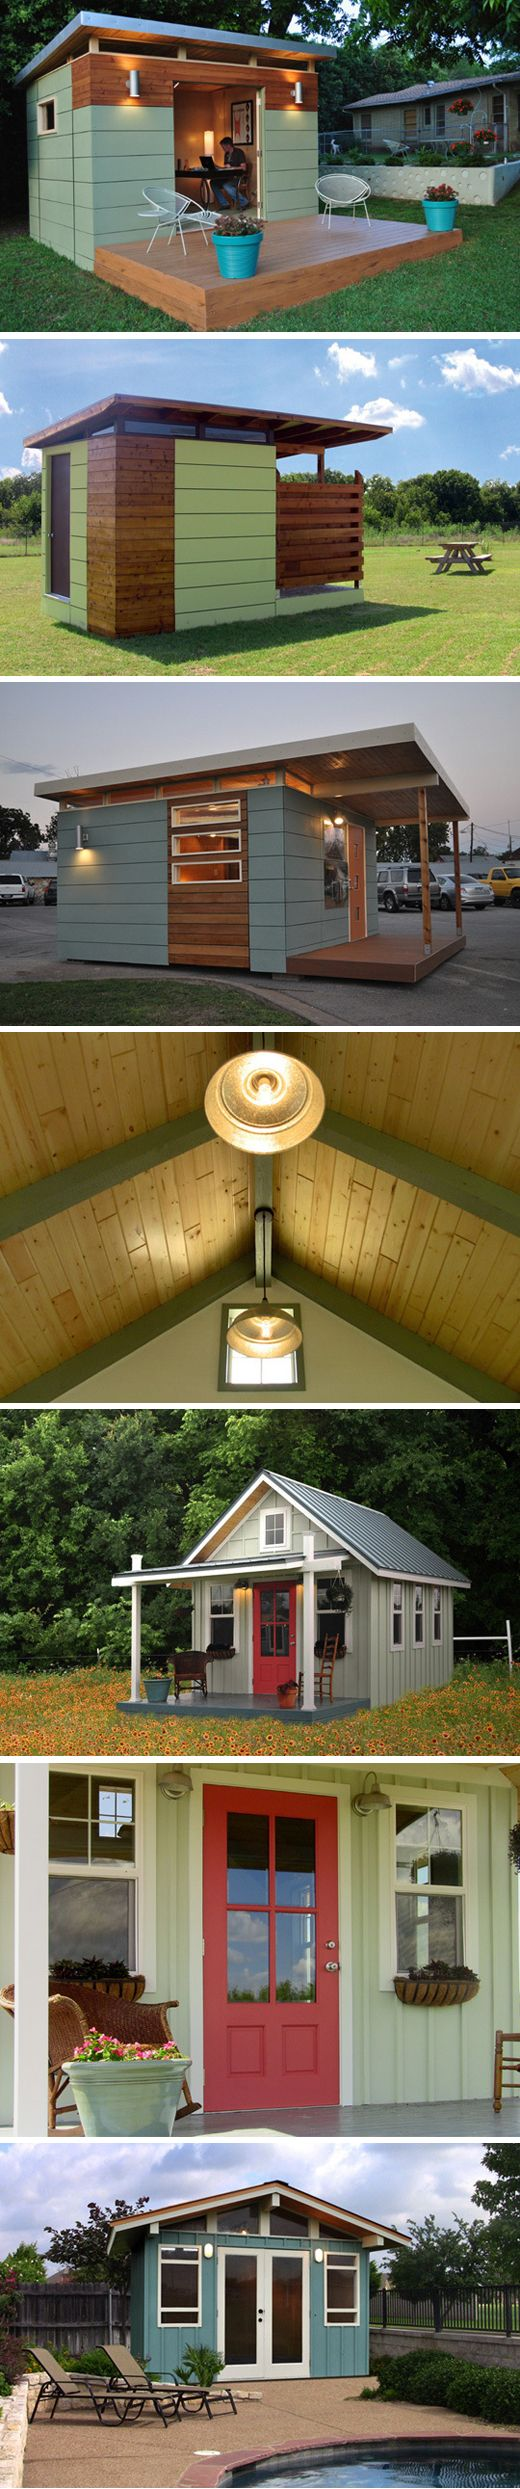 ^ 1000+ ideas about Modern Shed on Pinterest Studio shed, Shed ...